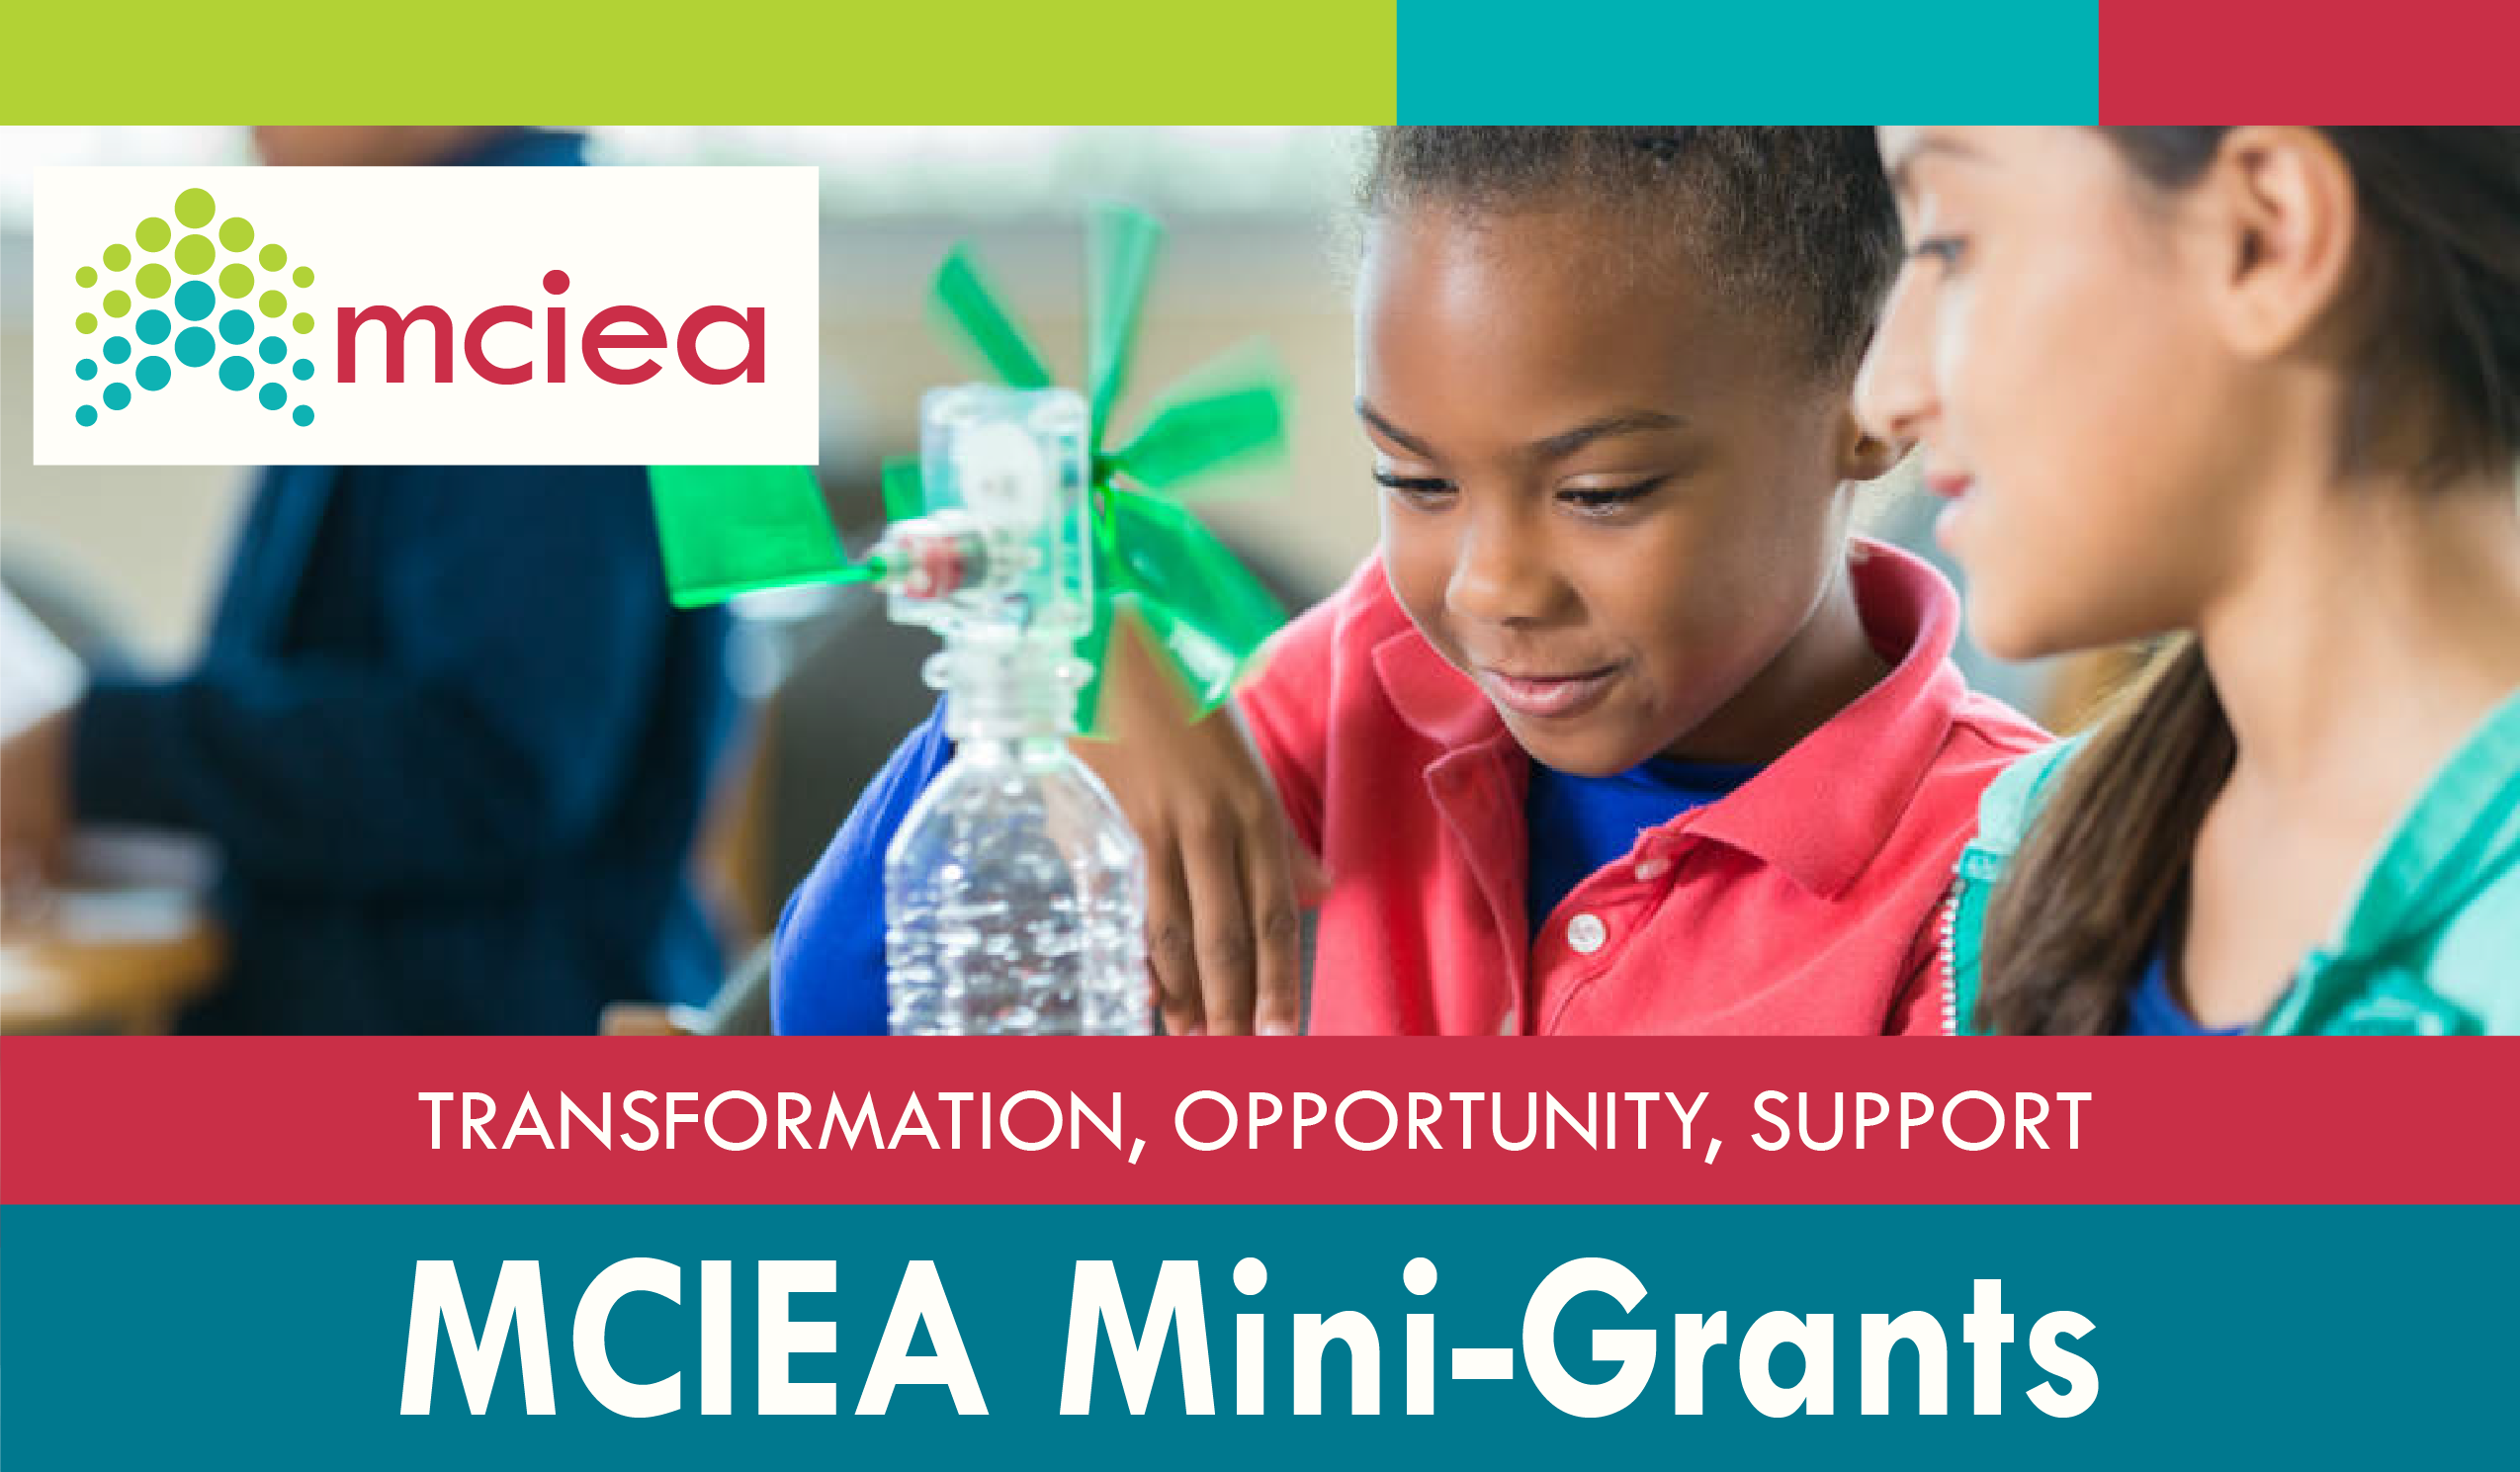 MCIEA Mini-Grants